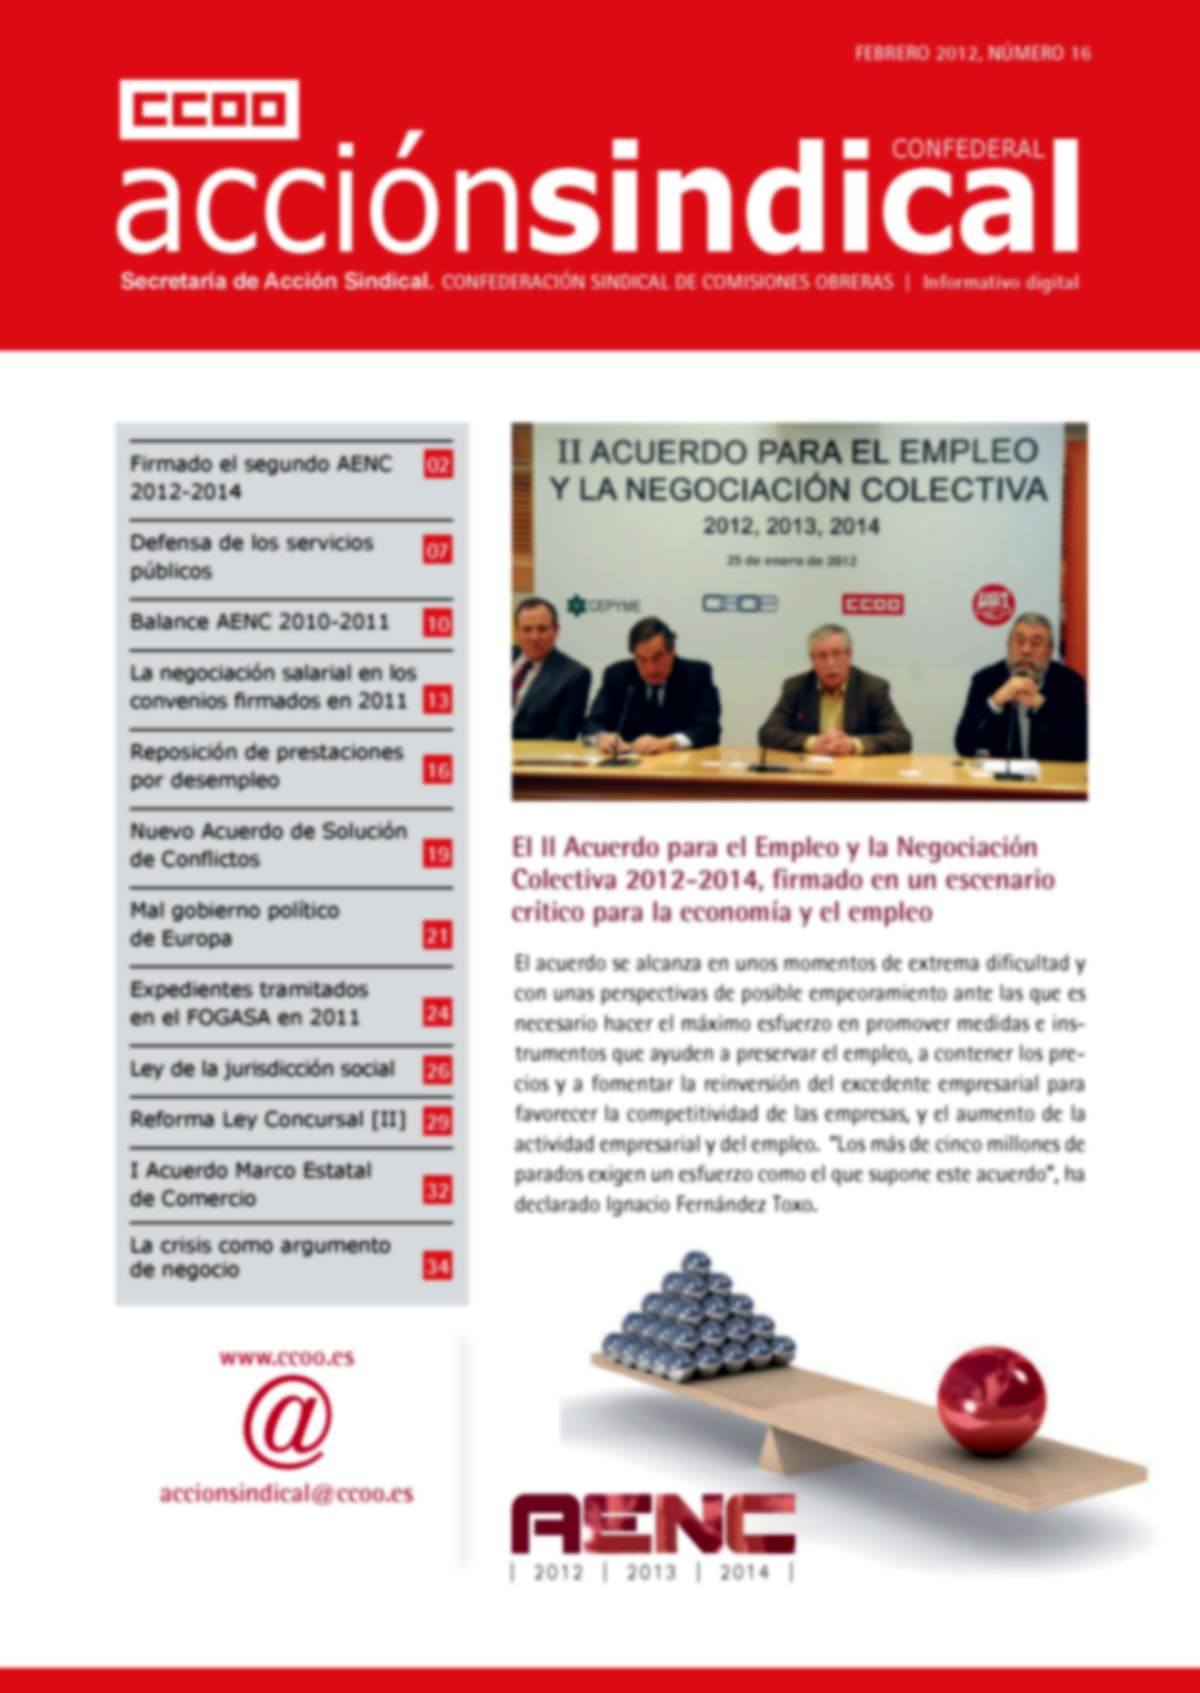 Informativo Digital Acción Sindical Confederal, nº 16